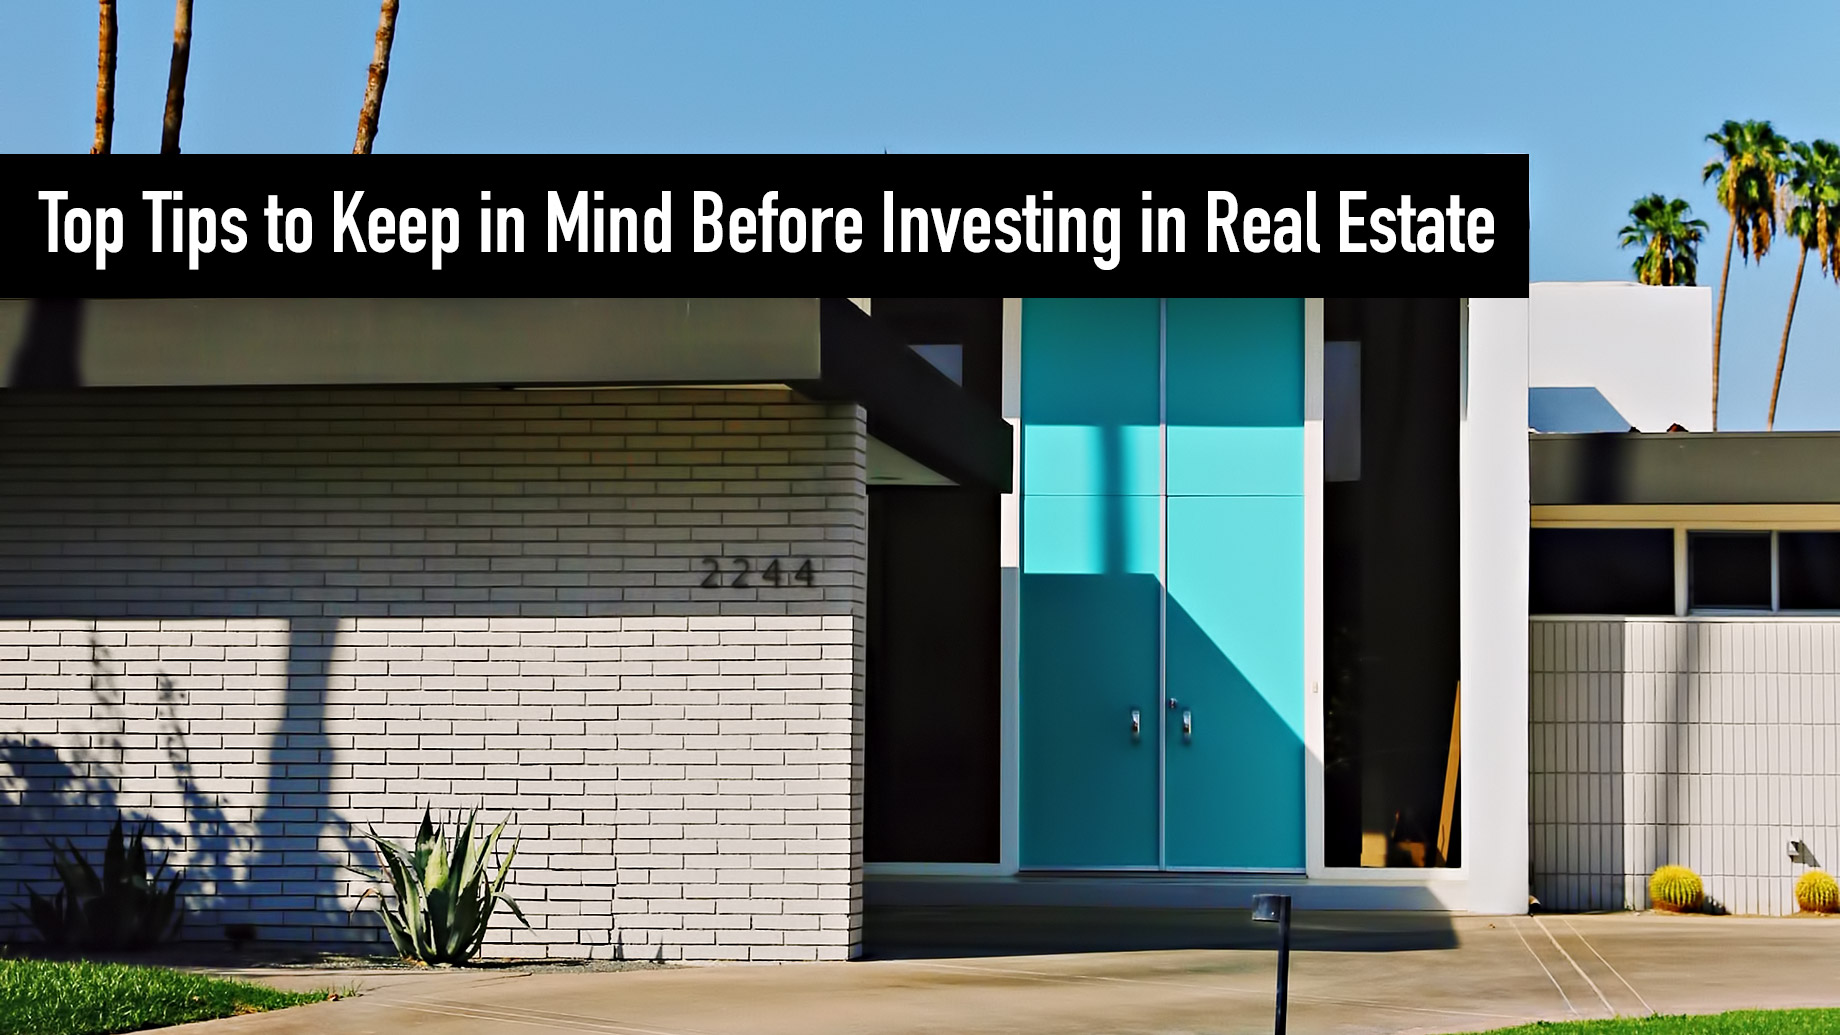 Top Tips to Keep in Mind Before Investing in Real Estate